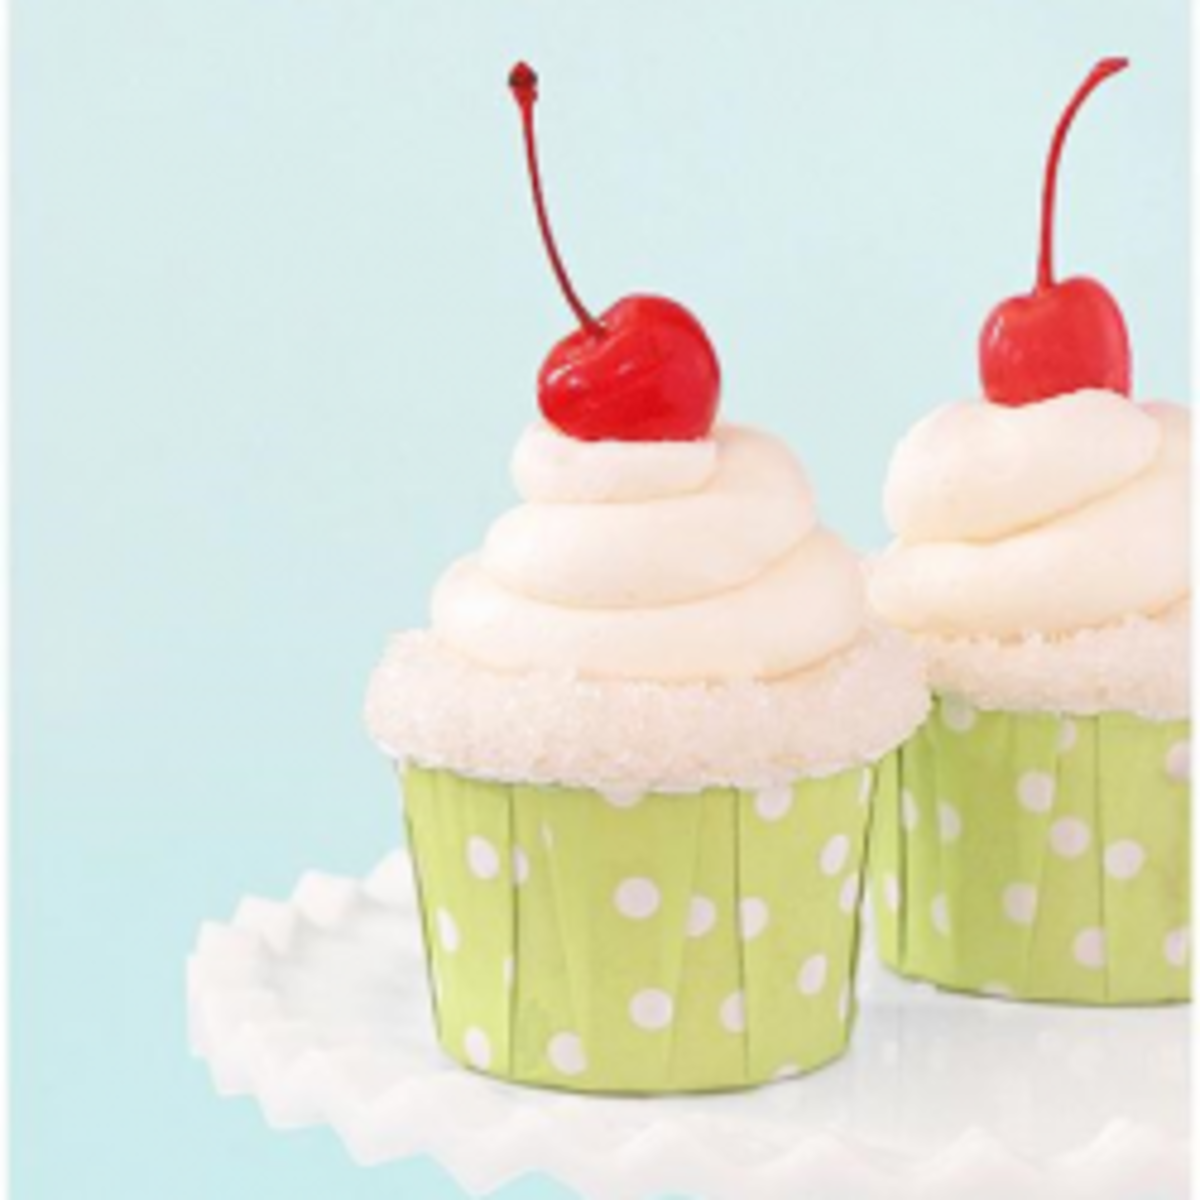 ★ Grown-Up Cupcake Recipes | Fun Cocktail Flavors & Sophisticated Fairy Cakes for Adults ★